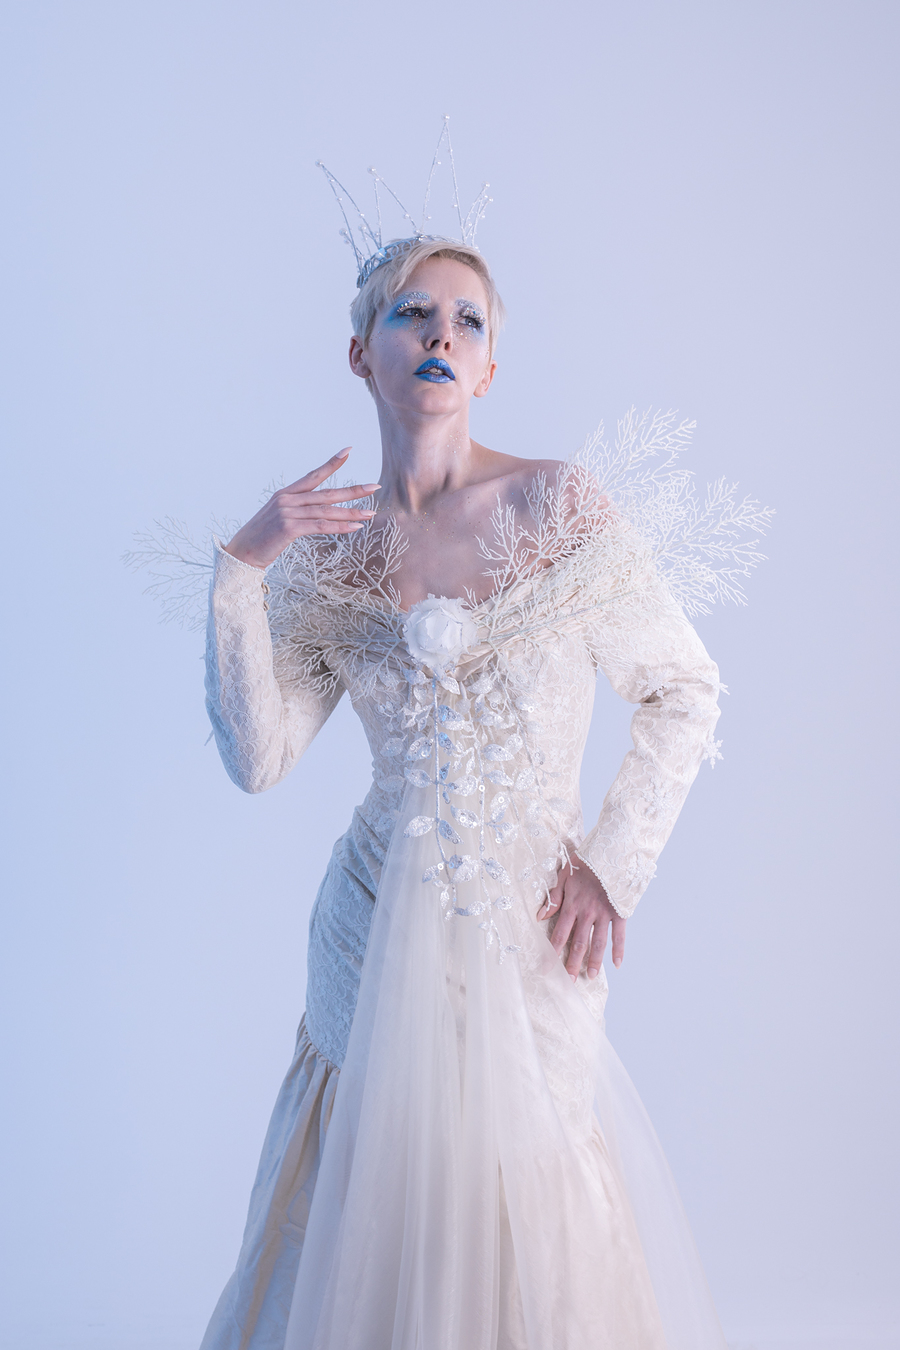 Snow Queen / Photography by Inspire Studios Ltd, Model Amie Boulton, Makeup by Beauty-within, Stylist Inspire Studios Ltd, Taken at Inspire Studios Ltd / Uploaded 15th January 2019 @ 10:30 AM